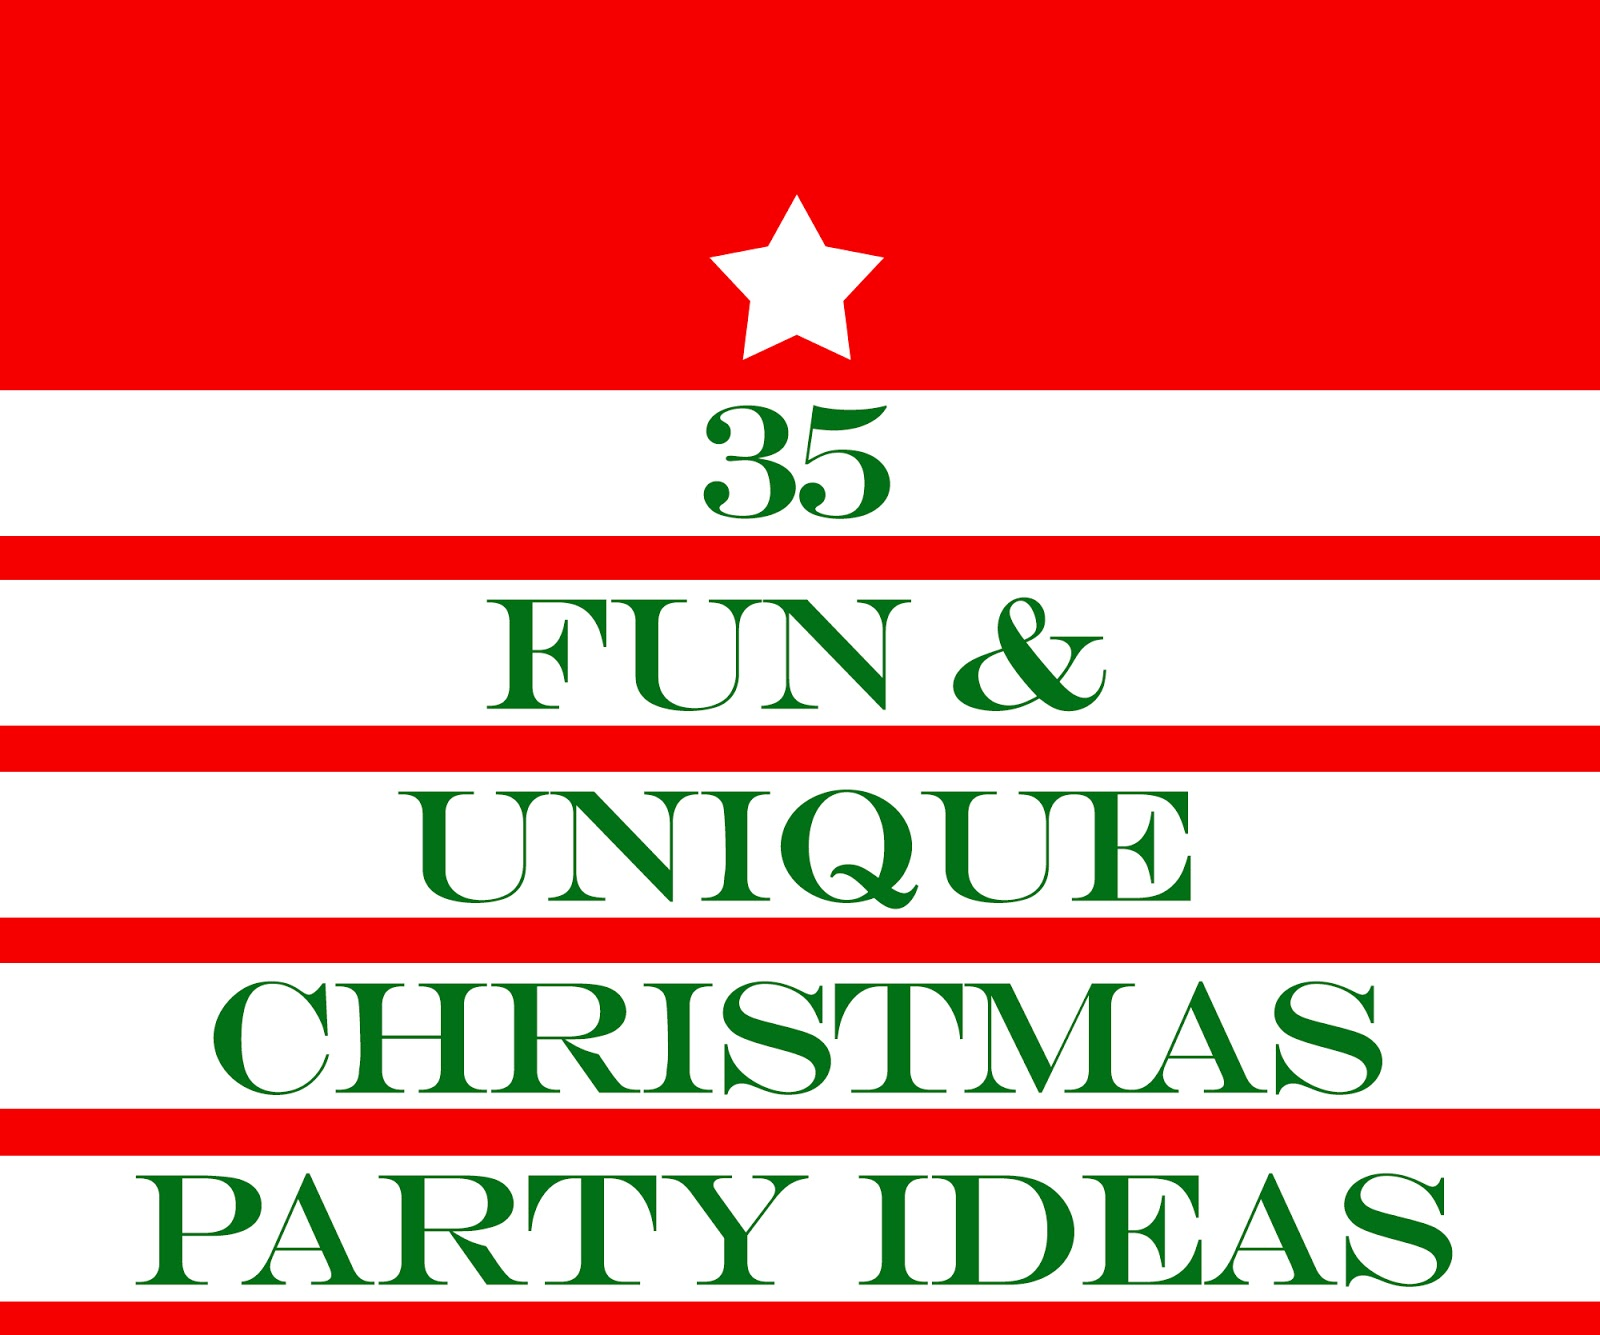 Funny Christmas Party Names.Family Christmas Party Themes Ideas Merry Christmas And